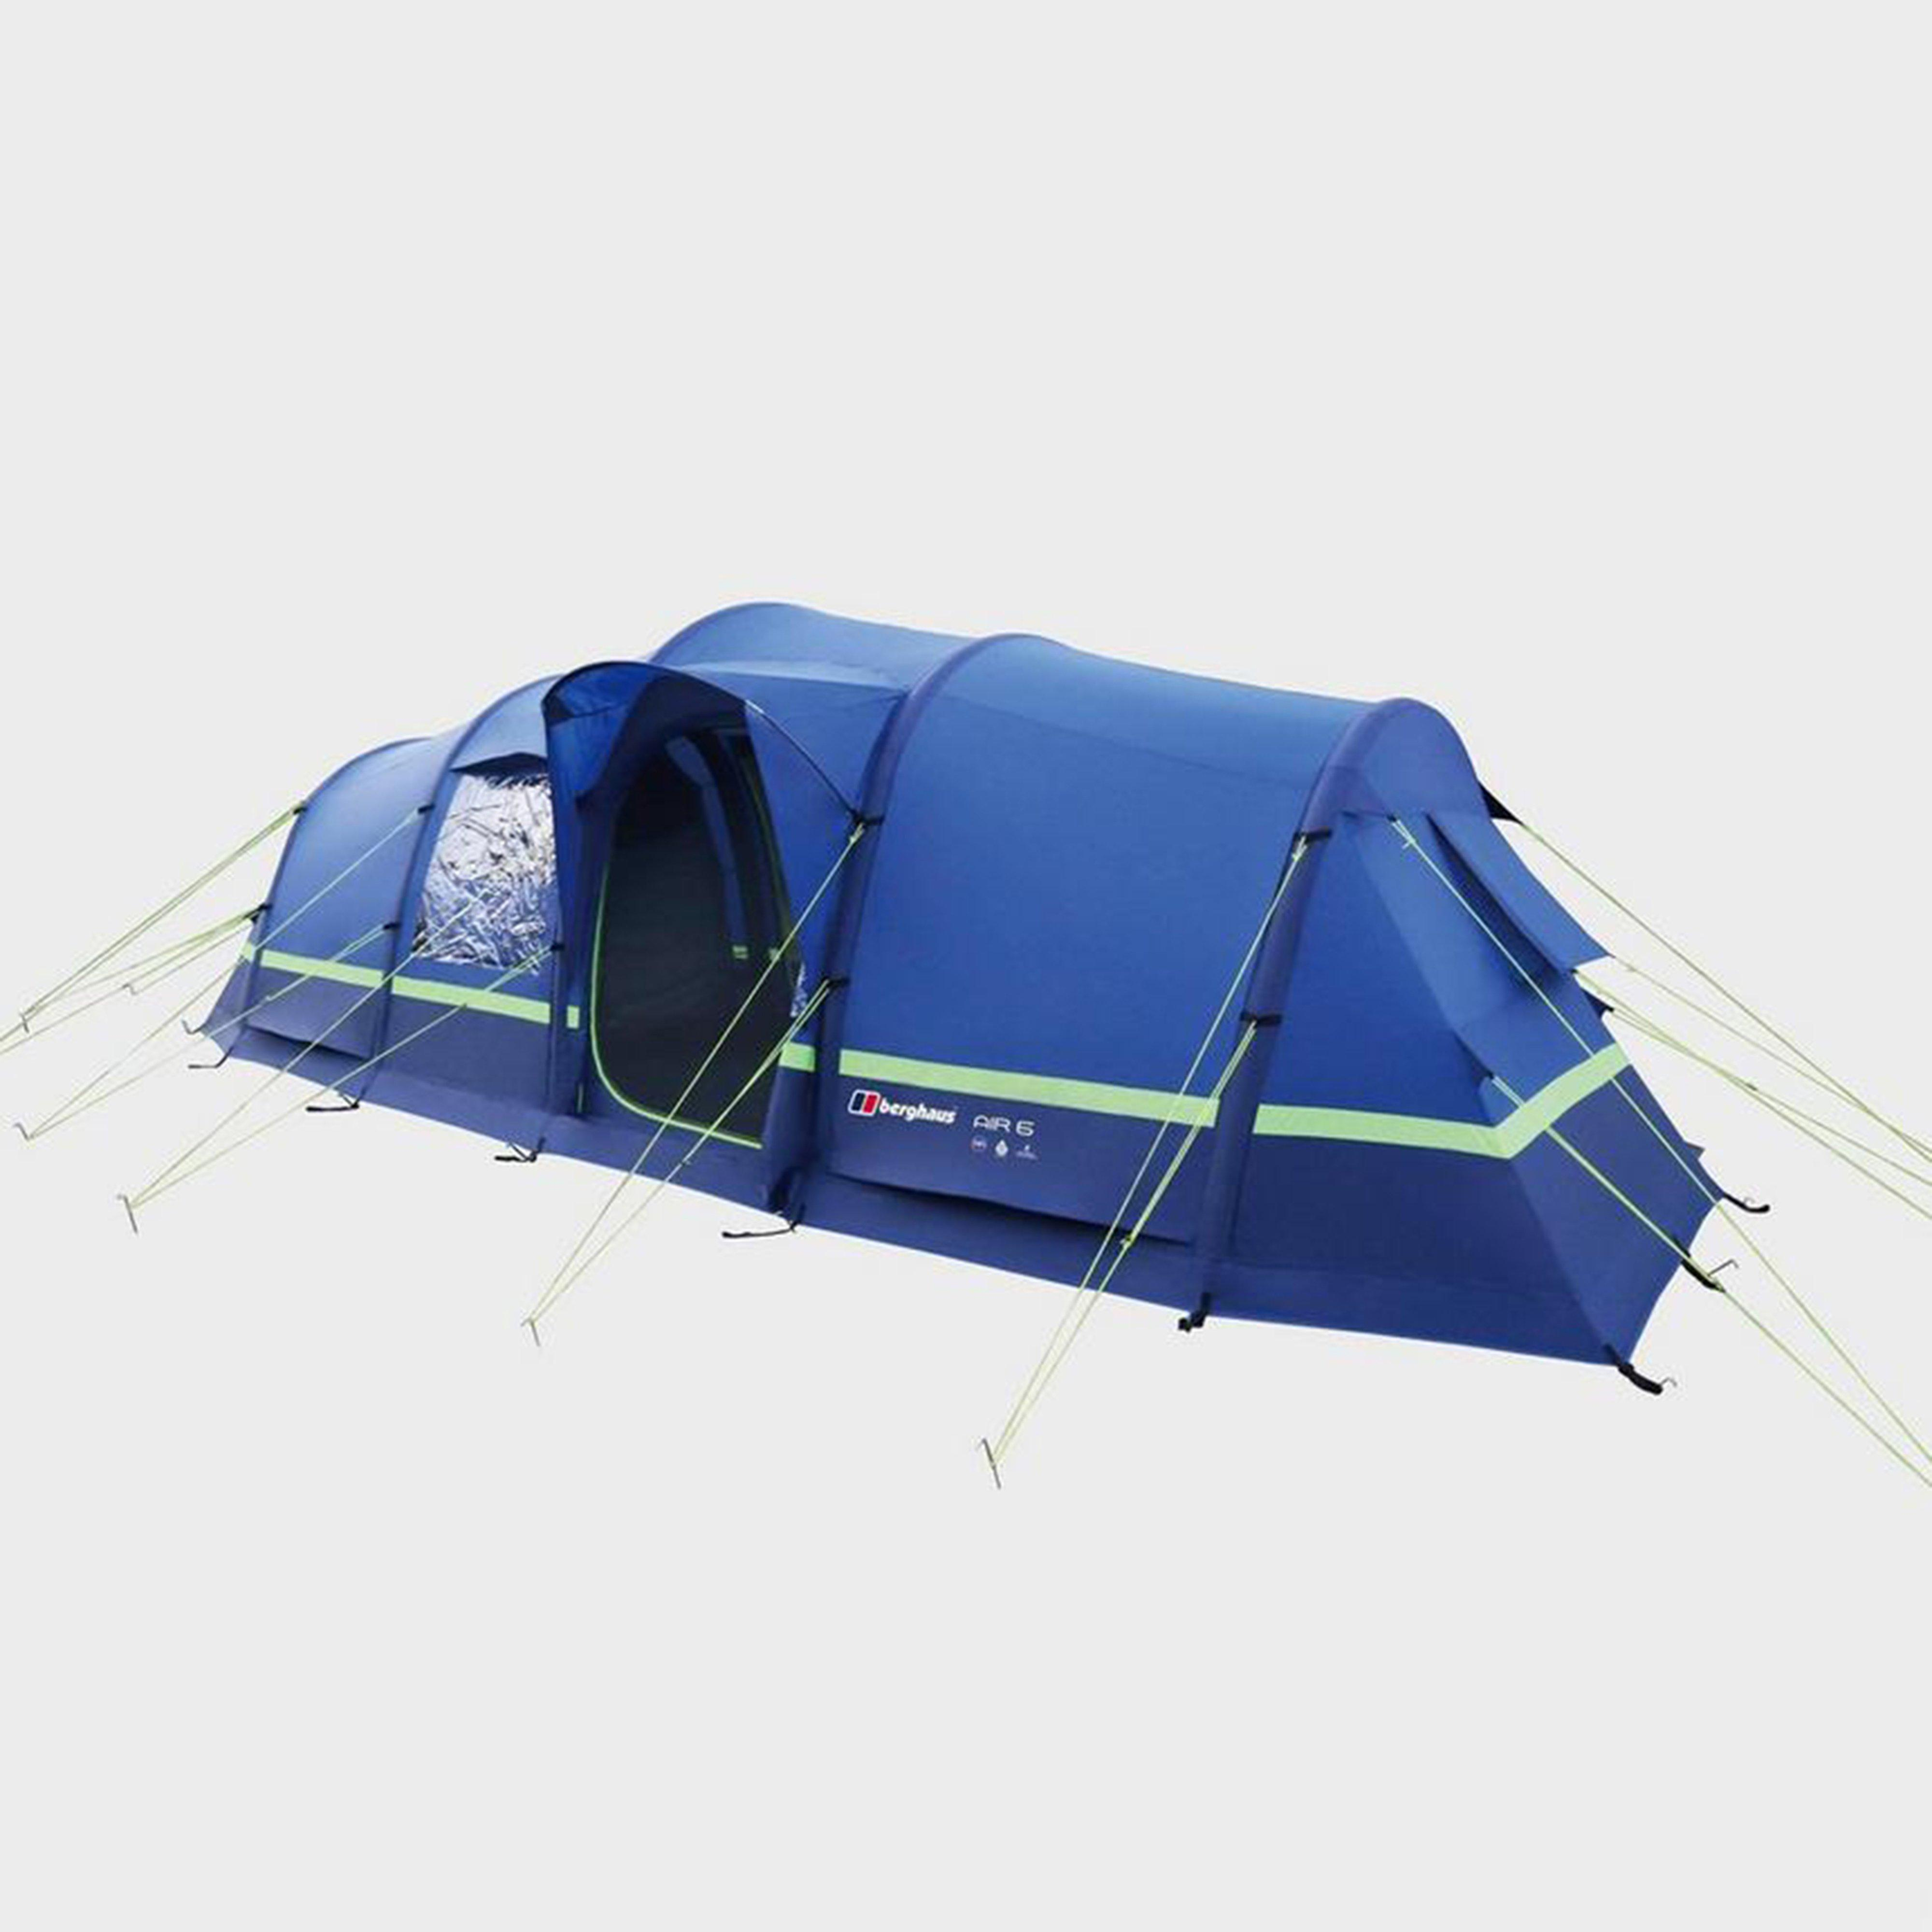 Mid Blue BERGHAUS Air 6 Inflatable Family Tent ... & 6 Man Tent u0026 6 Person Tents   Large Group Tents   Millets